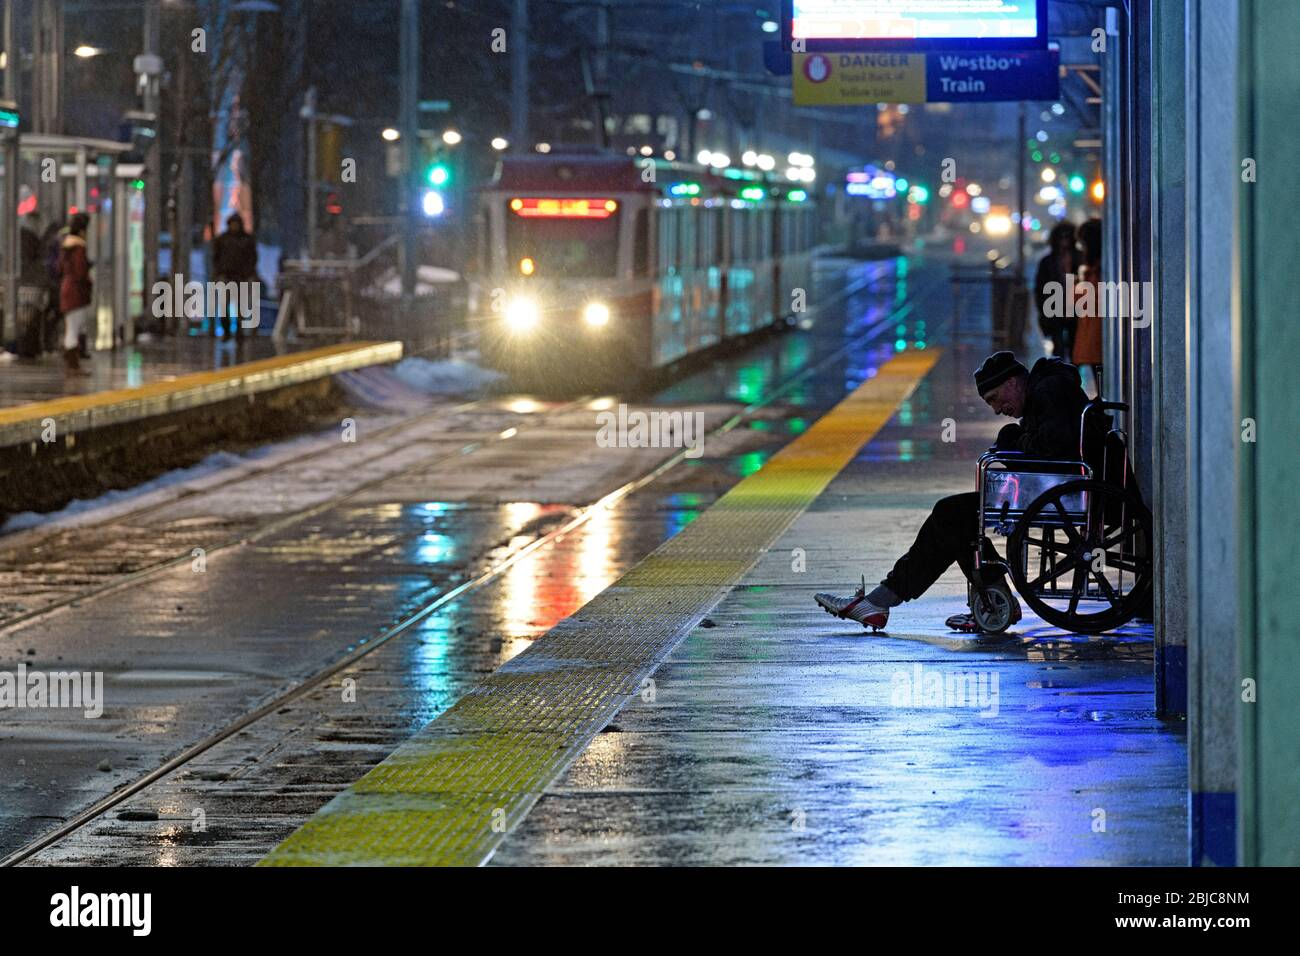 a-homeless-man-in-a-wheelchair-on-a-train-station-platform-during-a-rainy-night-calgary-alberta-canada-2BJC8NM.jpg